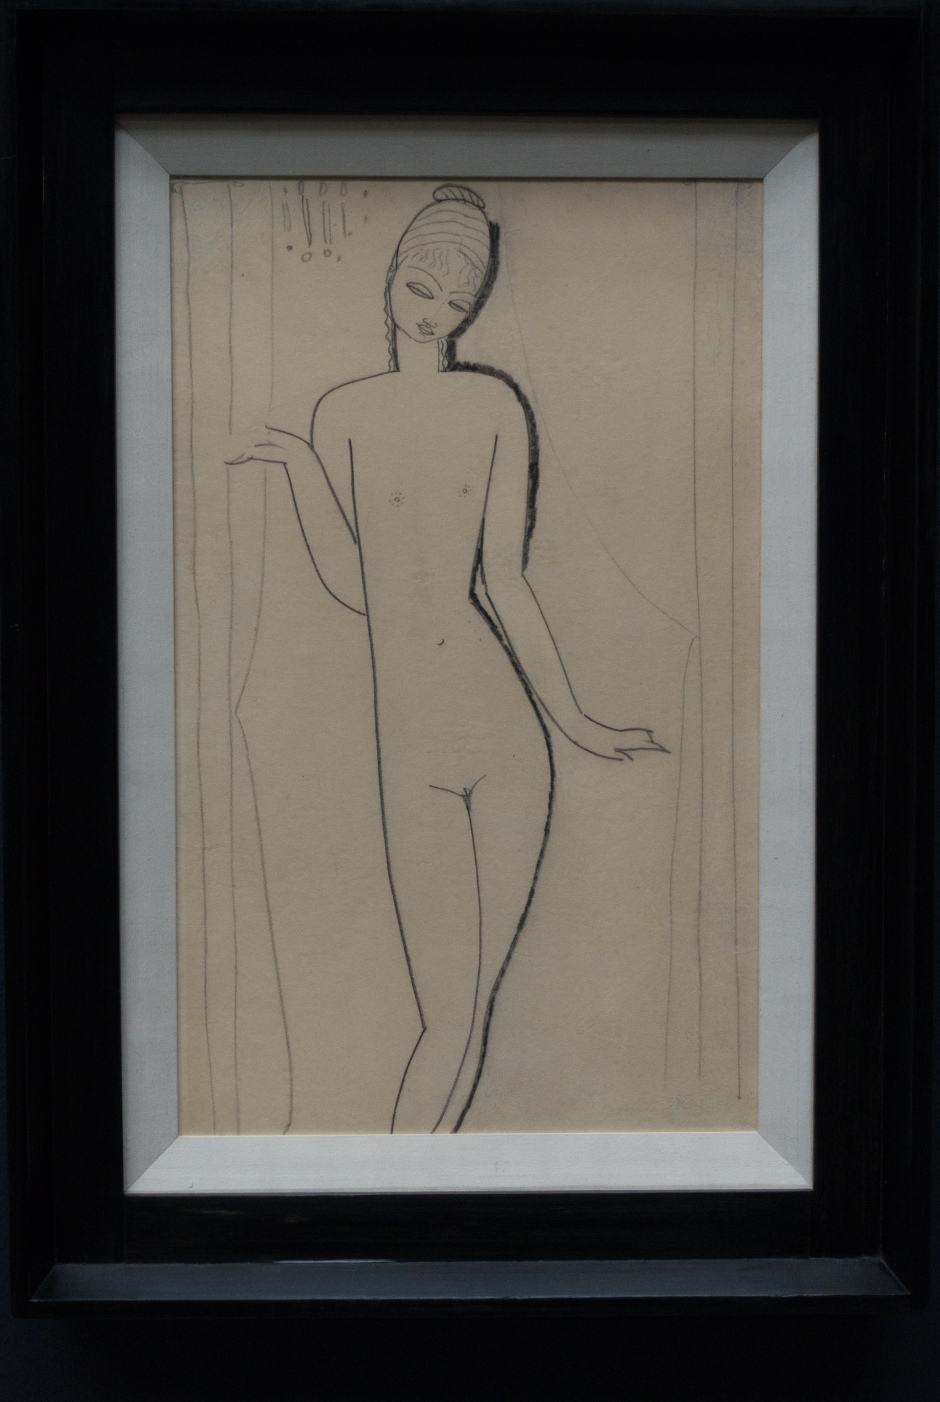 This Modigliani line drawing caught my attention, but unfortunately I did not record the details and cannot find the image in the catalogue